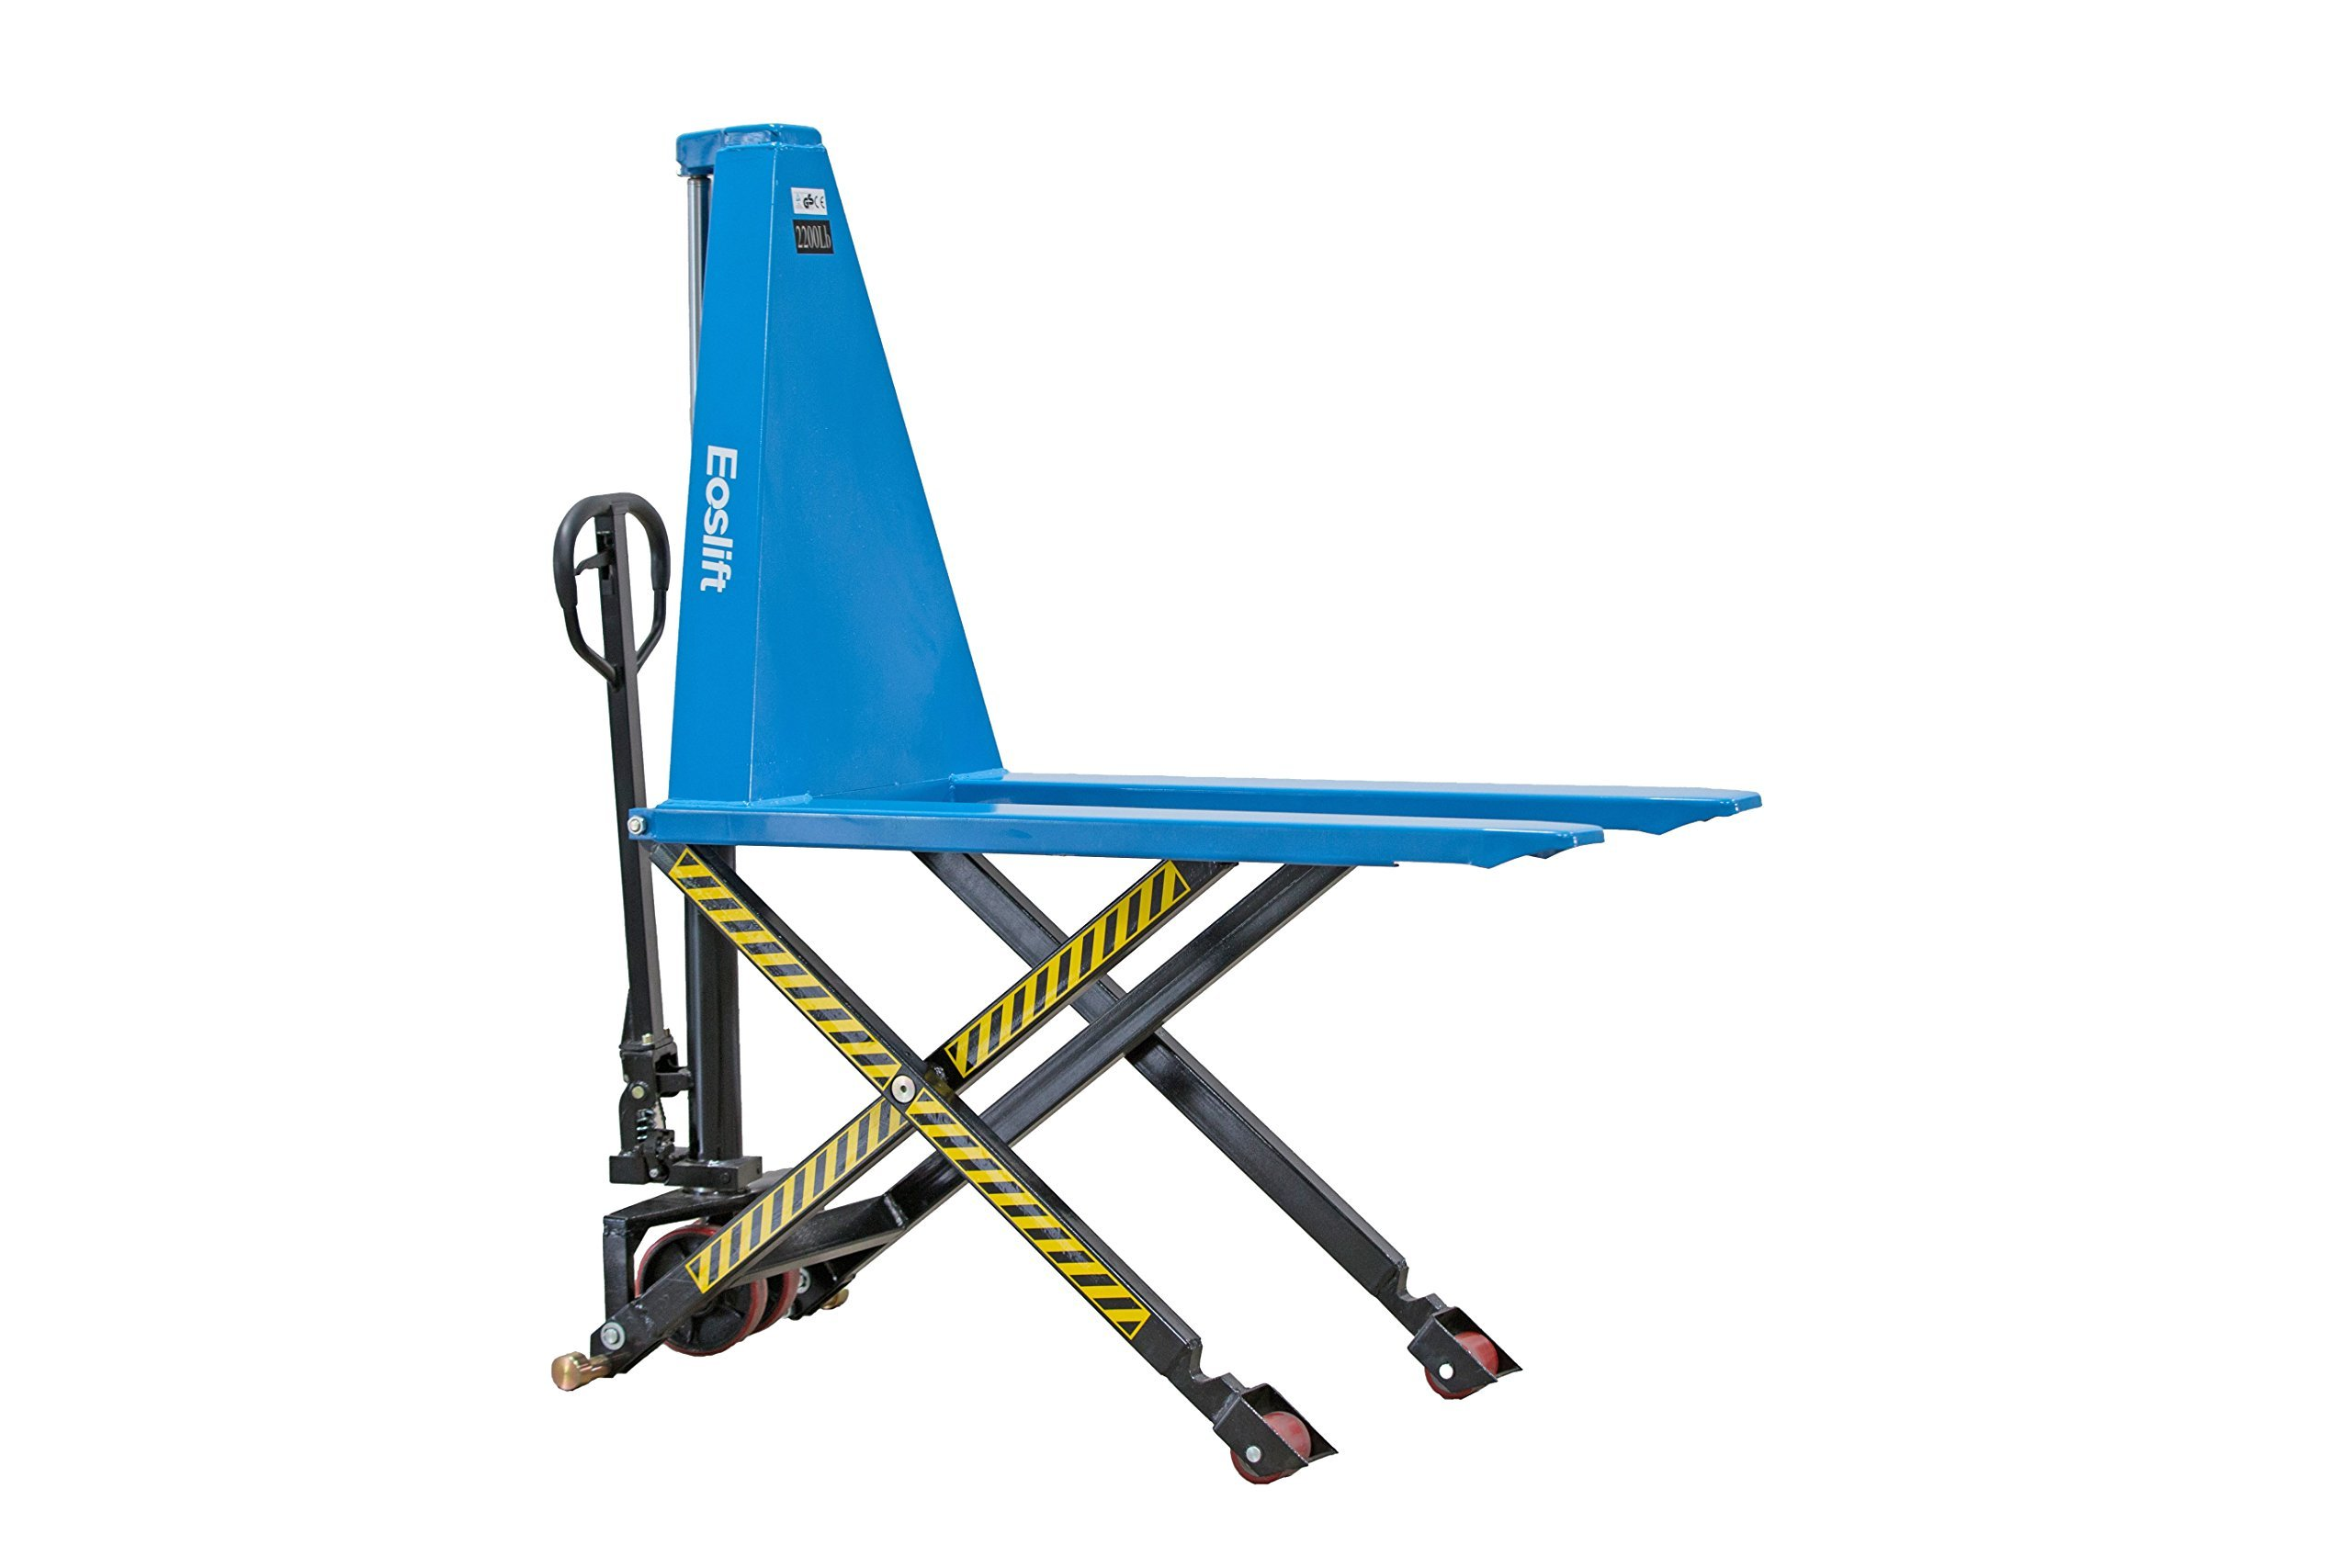 Eoslift I10 Manual Single Piston Scissor High Lift Pallet Jack Truck, Capacity 2200 lb. by Eoslift